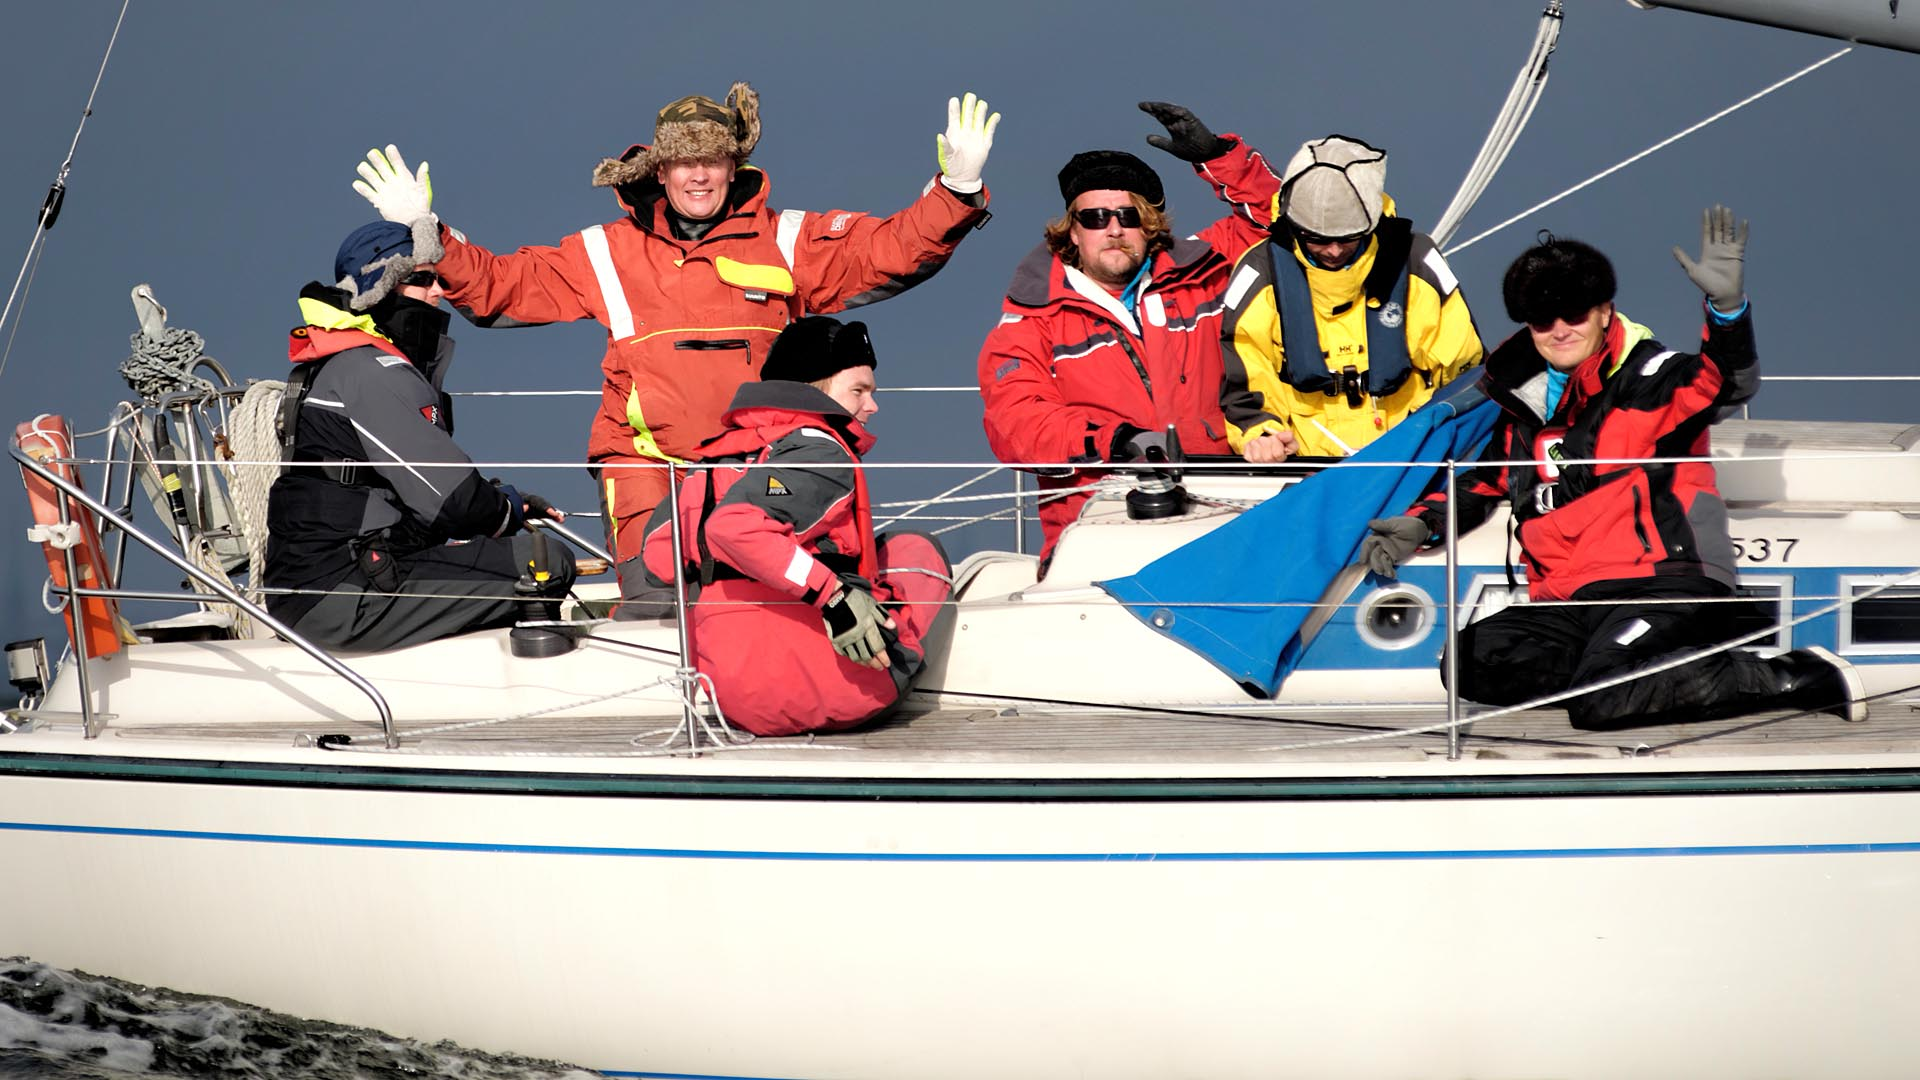 """Last offshore race of the season 2014 in Finland. Name of the race """"Karvalakki"""" means """"fur hat"""", which you can recognize in many of the 133 photos taken during the warm and partly sunny day. Results."""